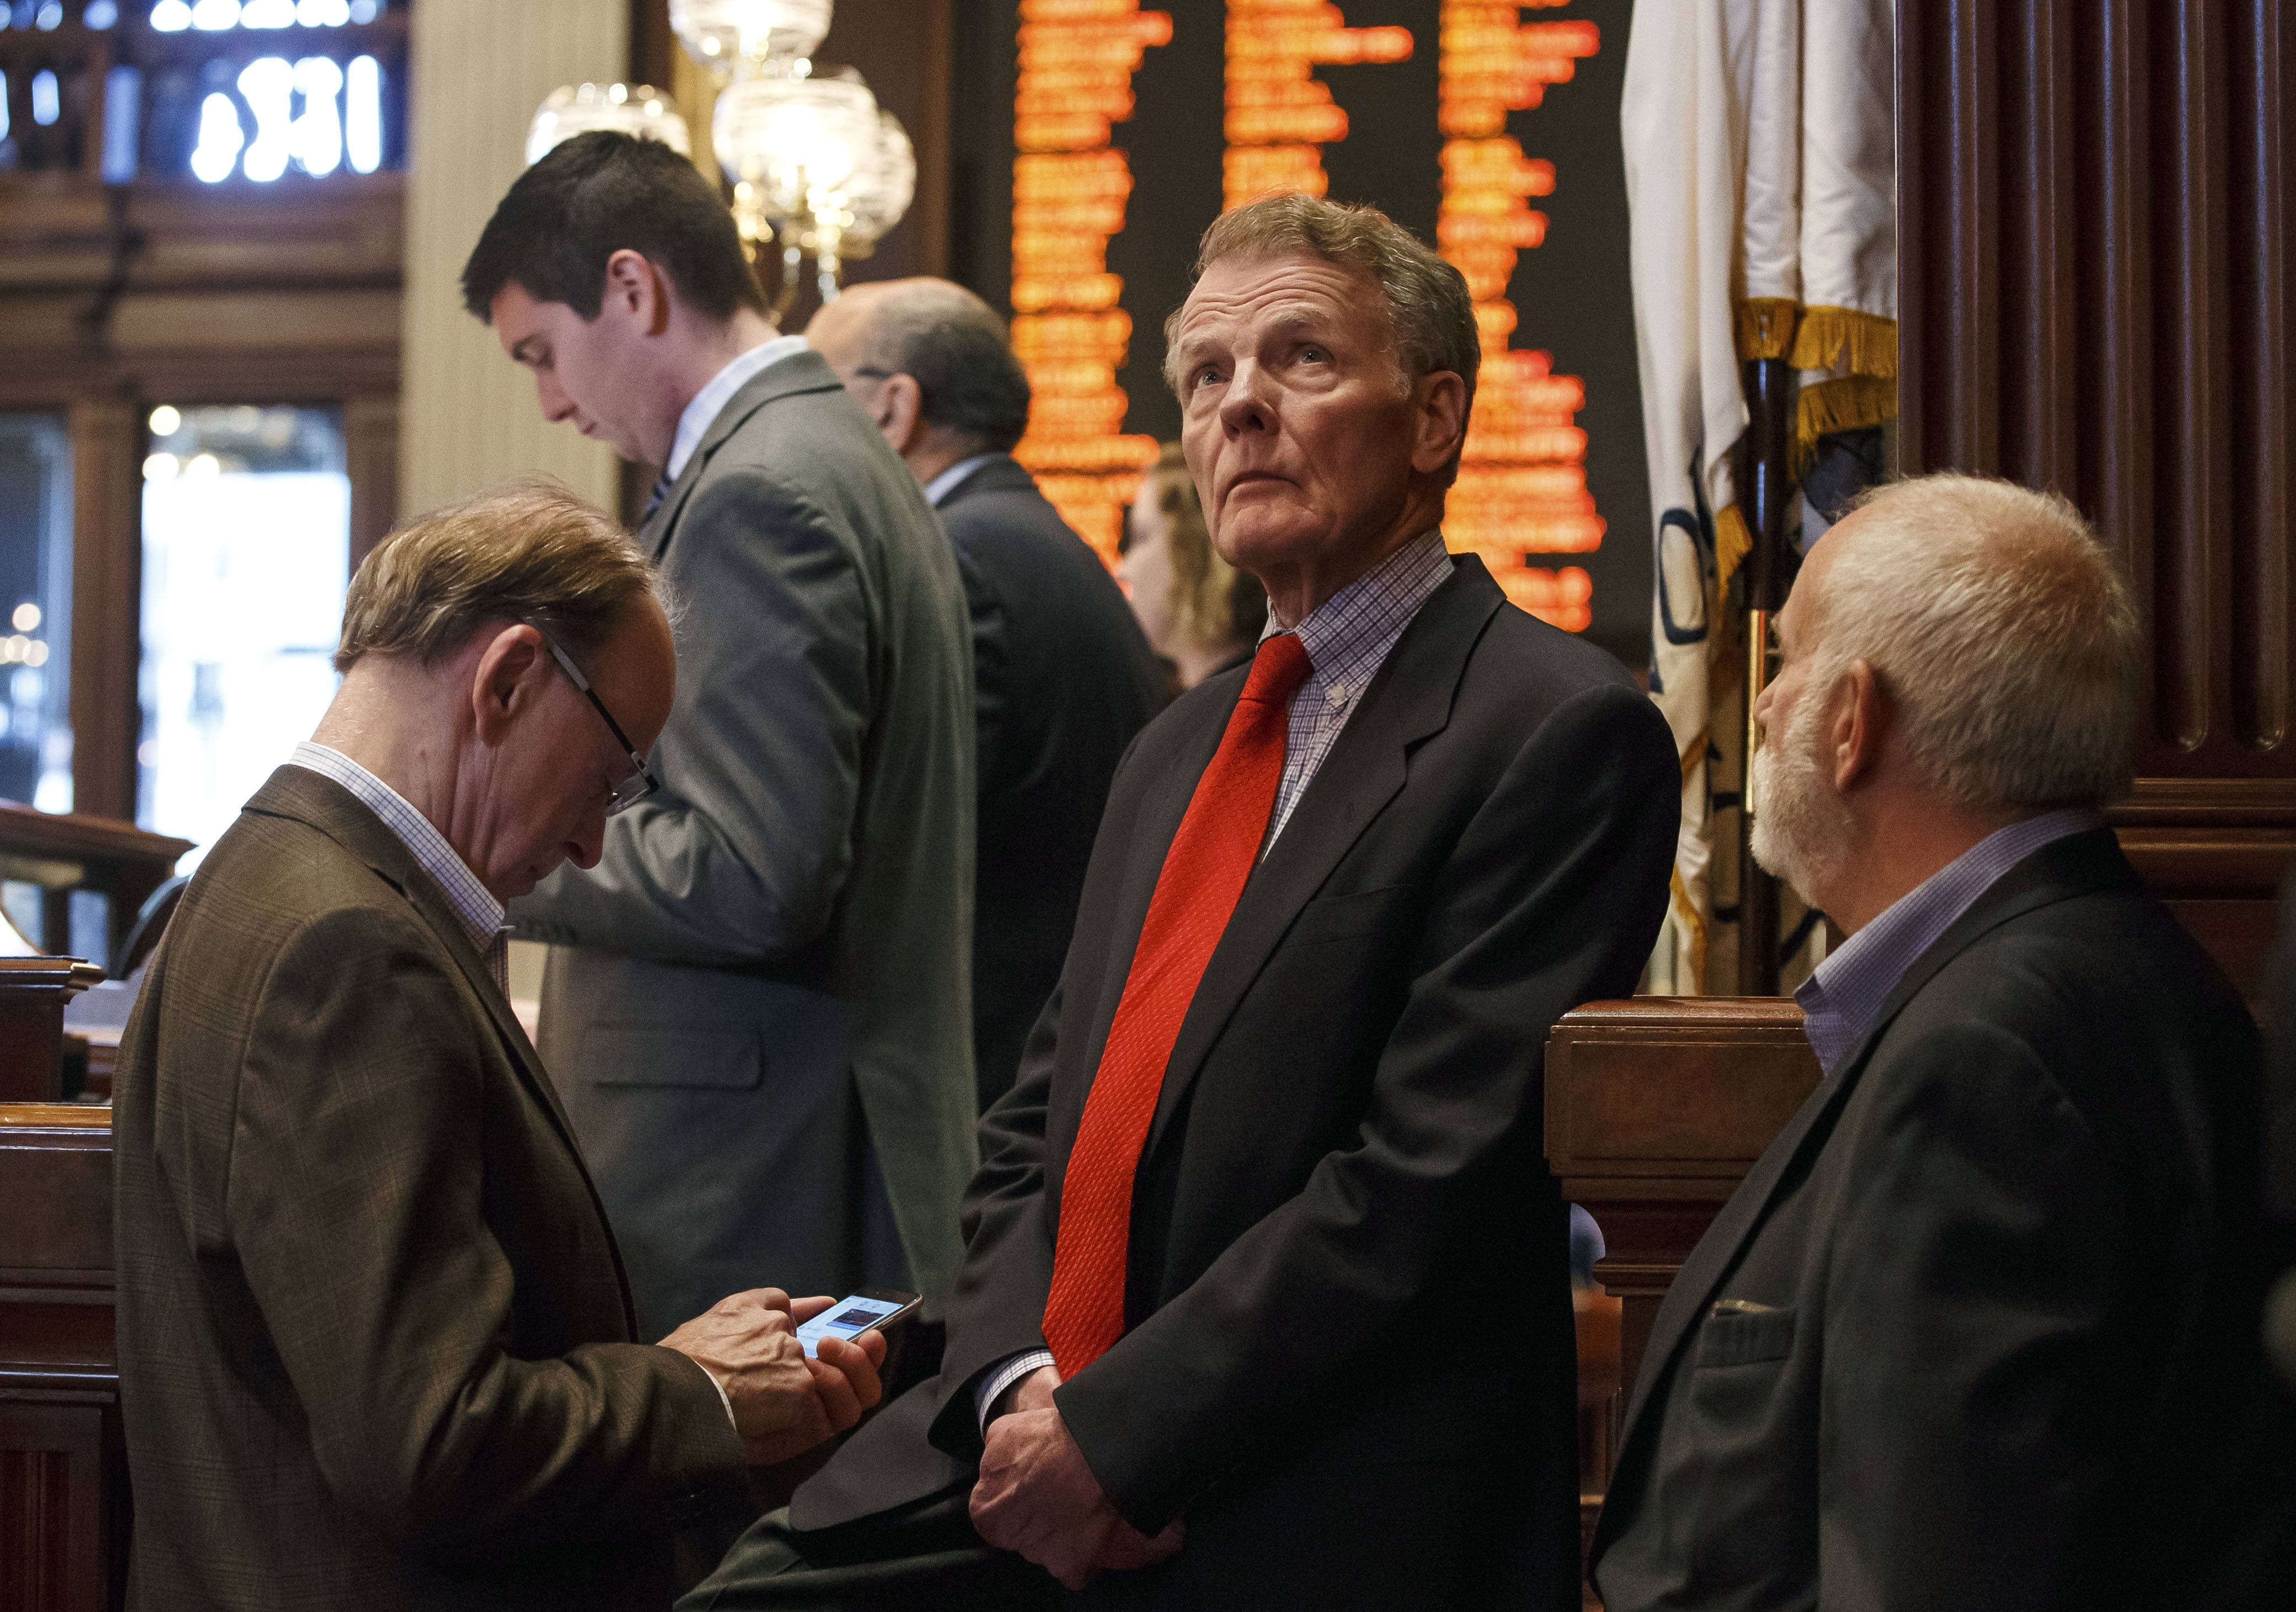 Credit rating agencies to Illinois lawmakers: Take the budget deal